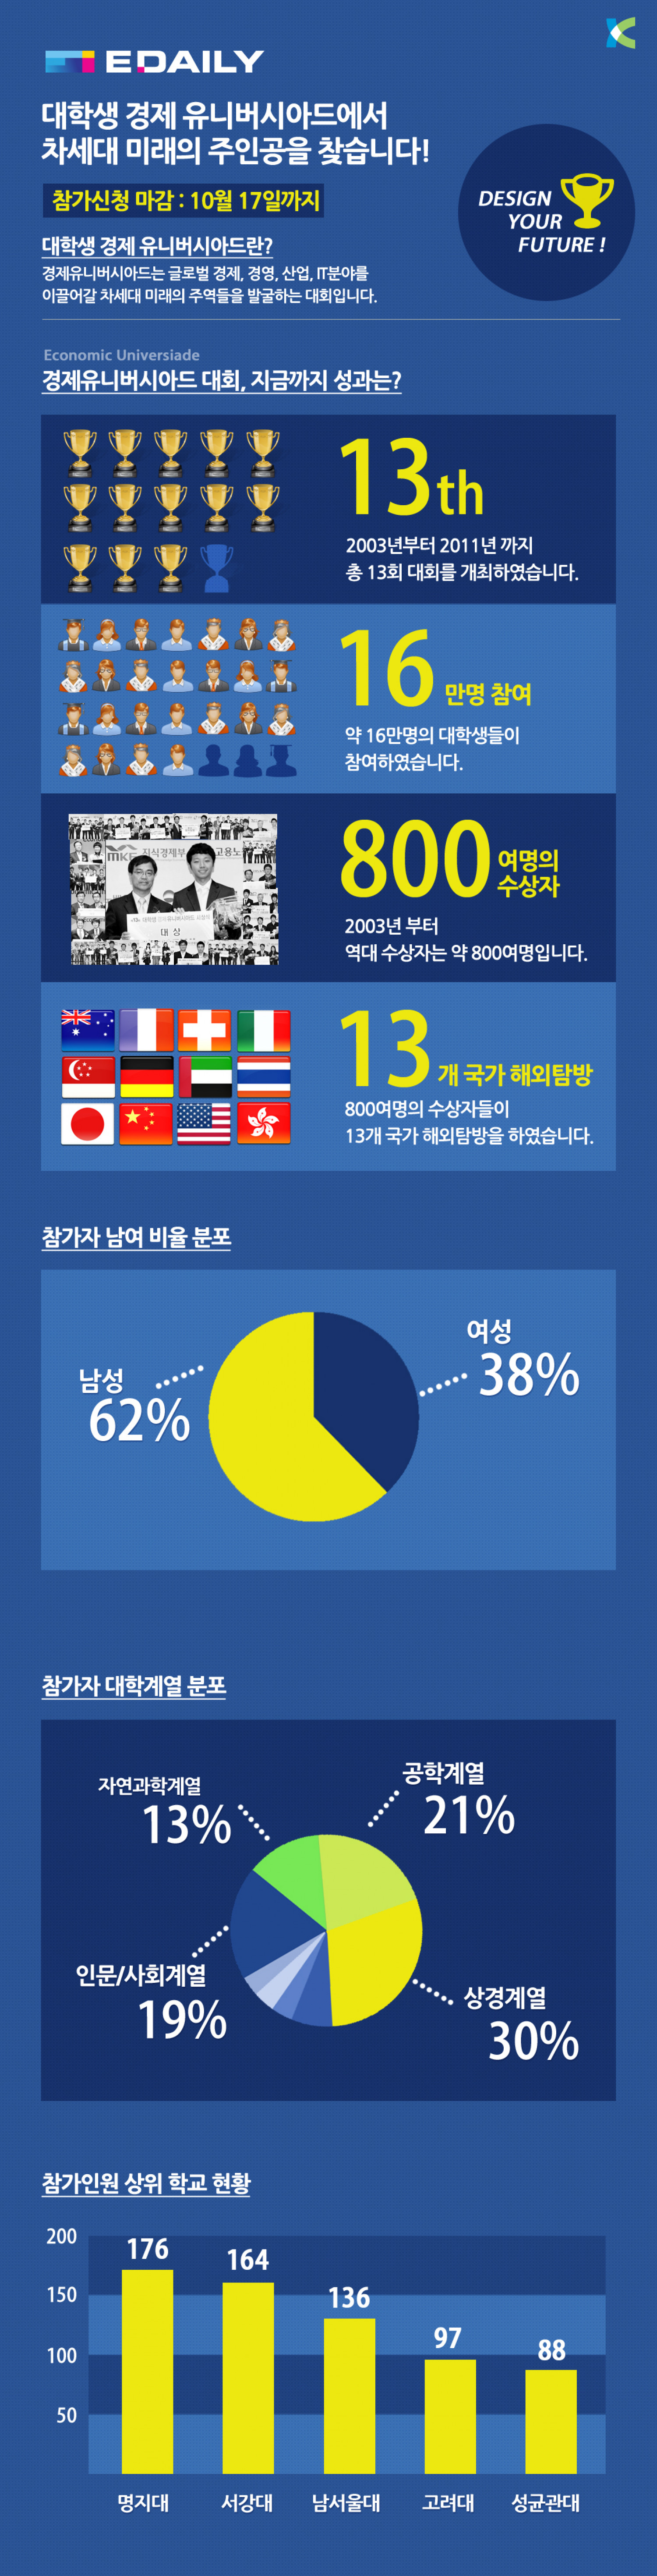 Edaily_Infographic Infographic